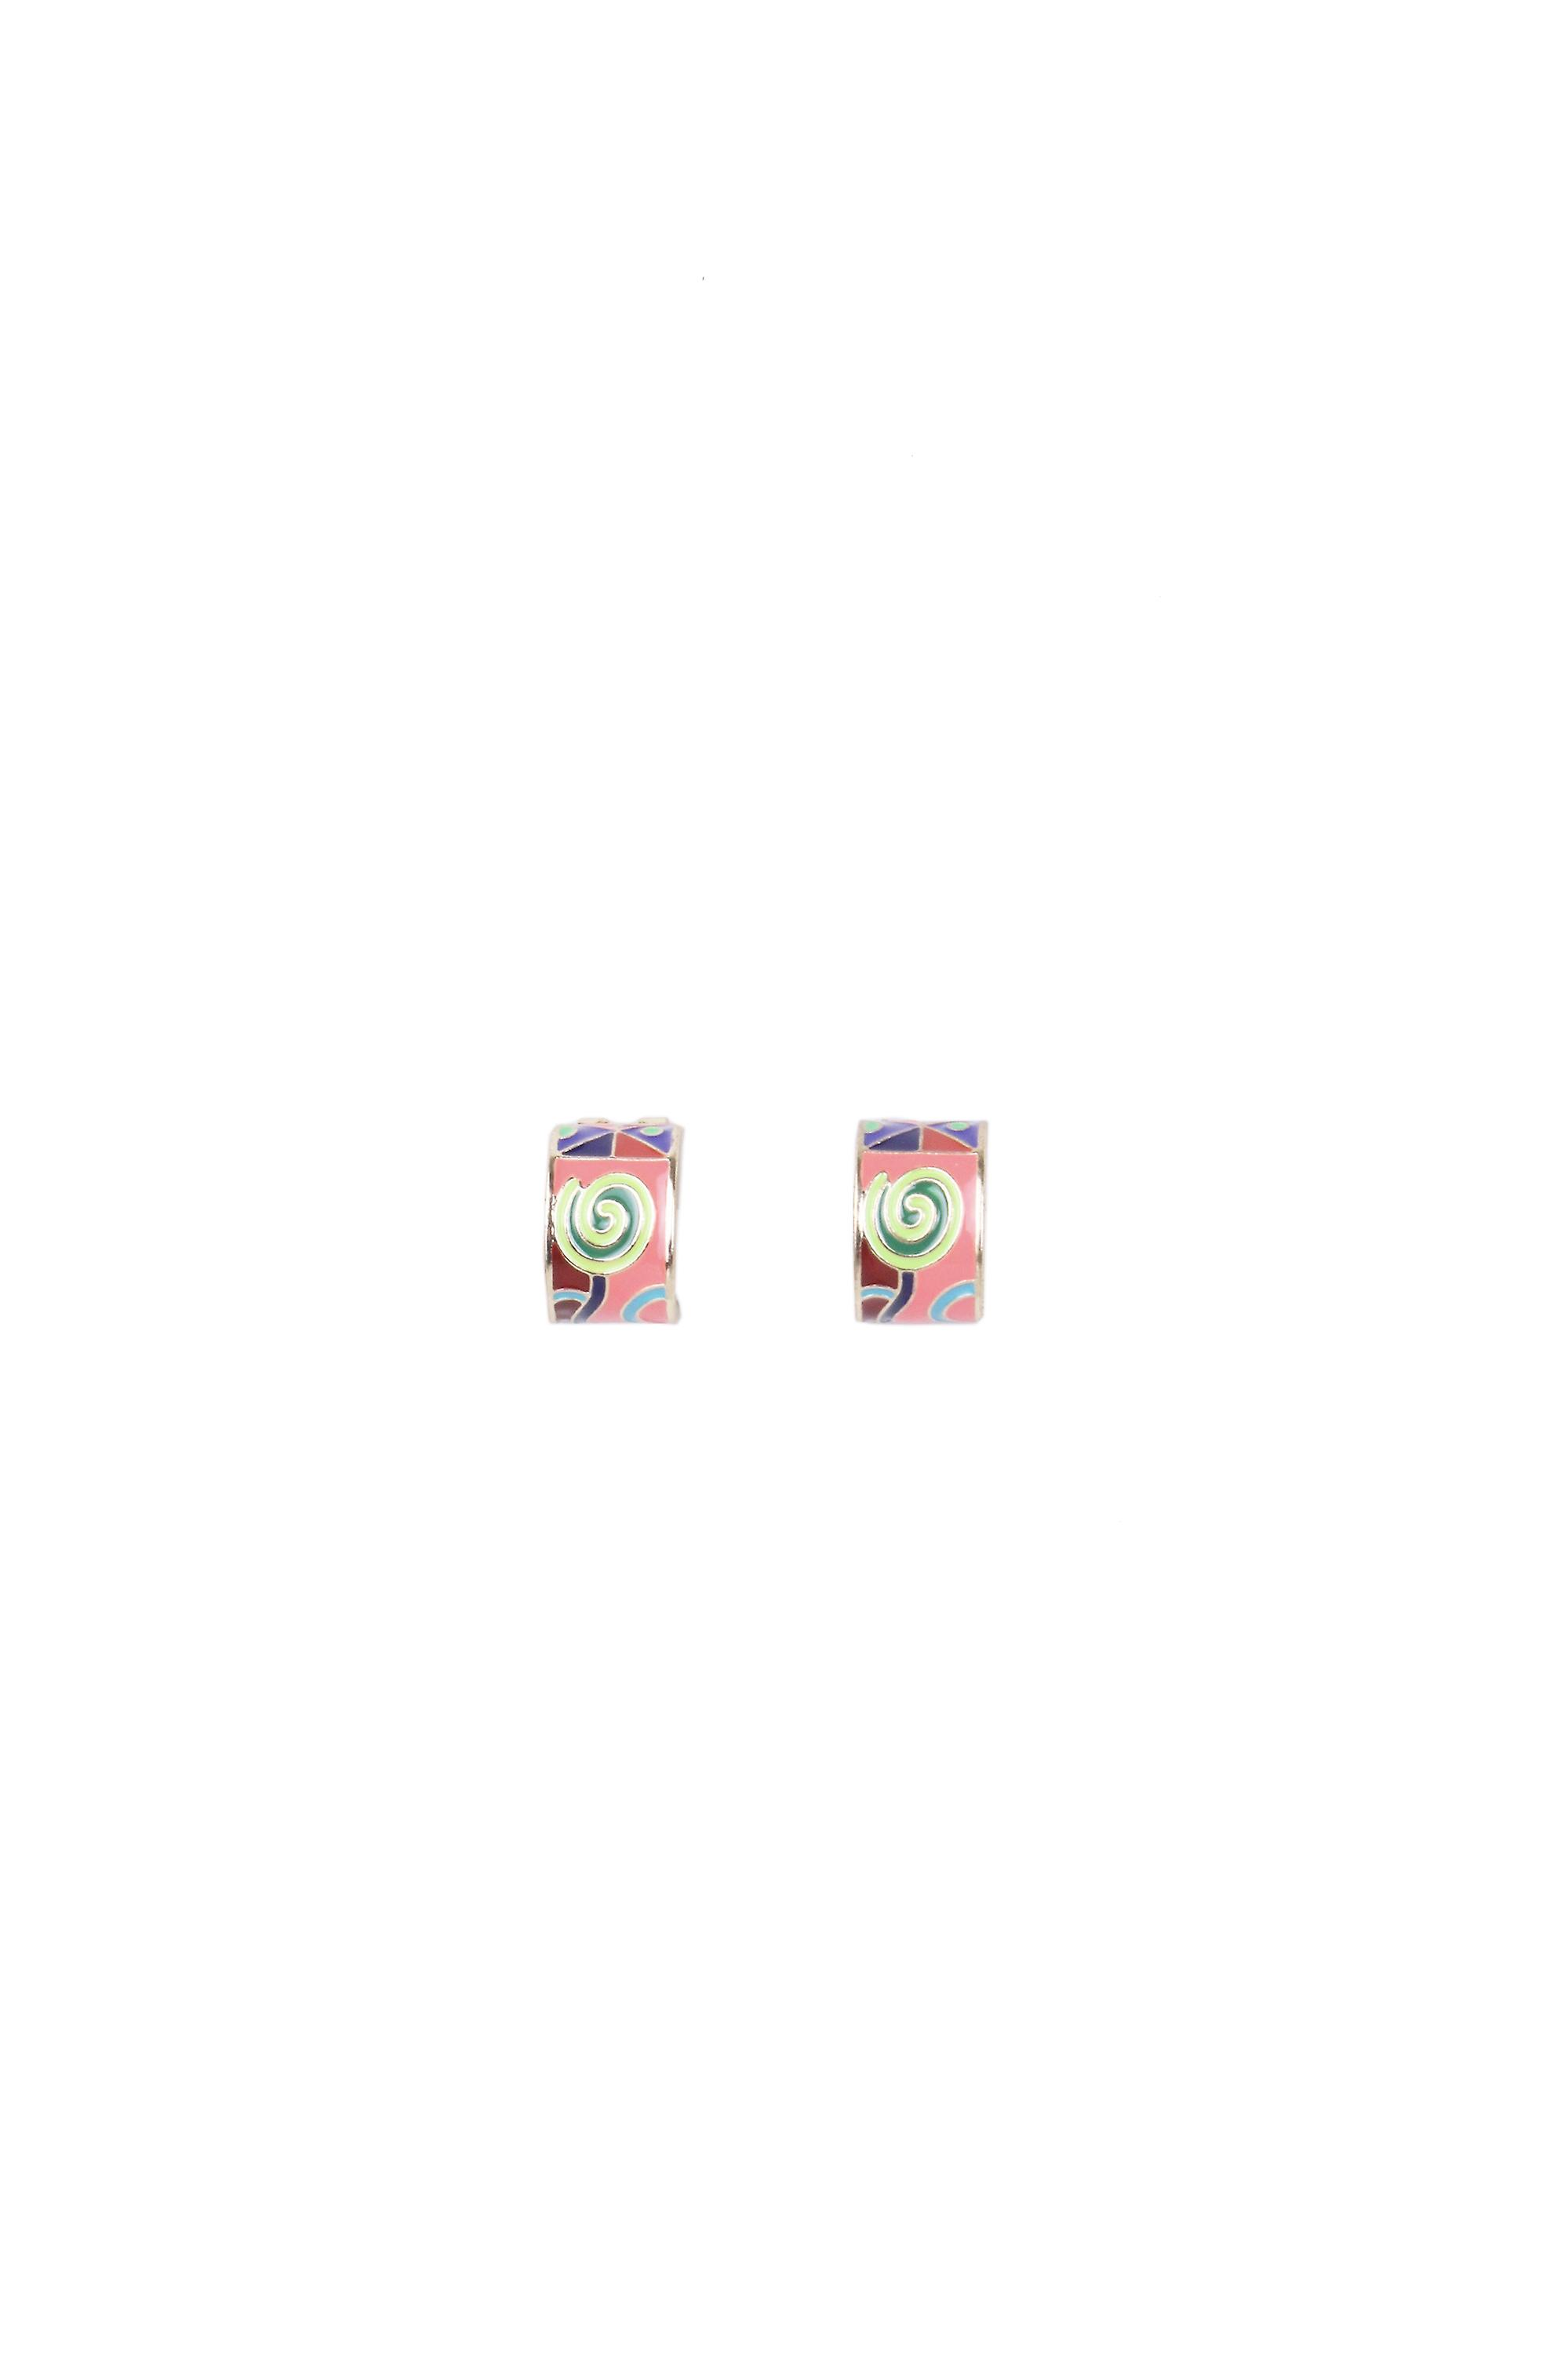 Lovemystyle Gold Hoop Earrings with Multi Coloured Design